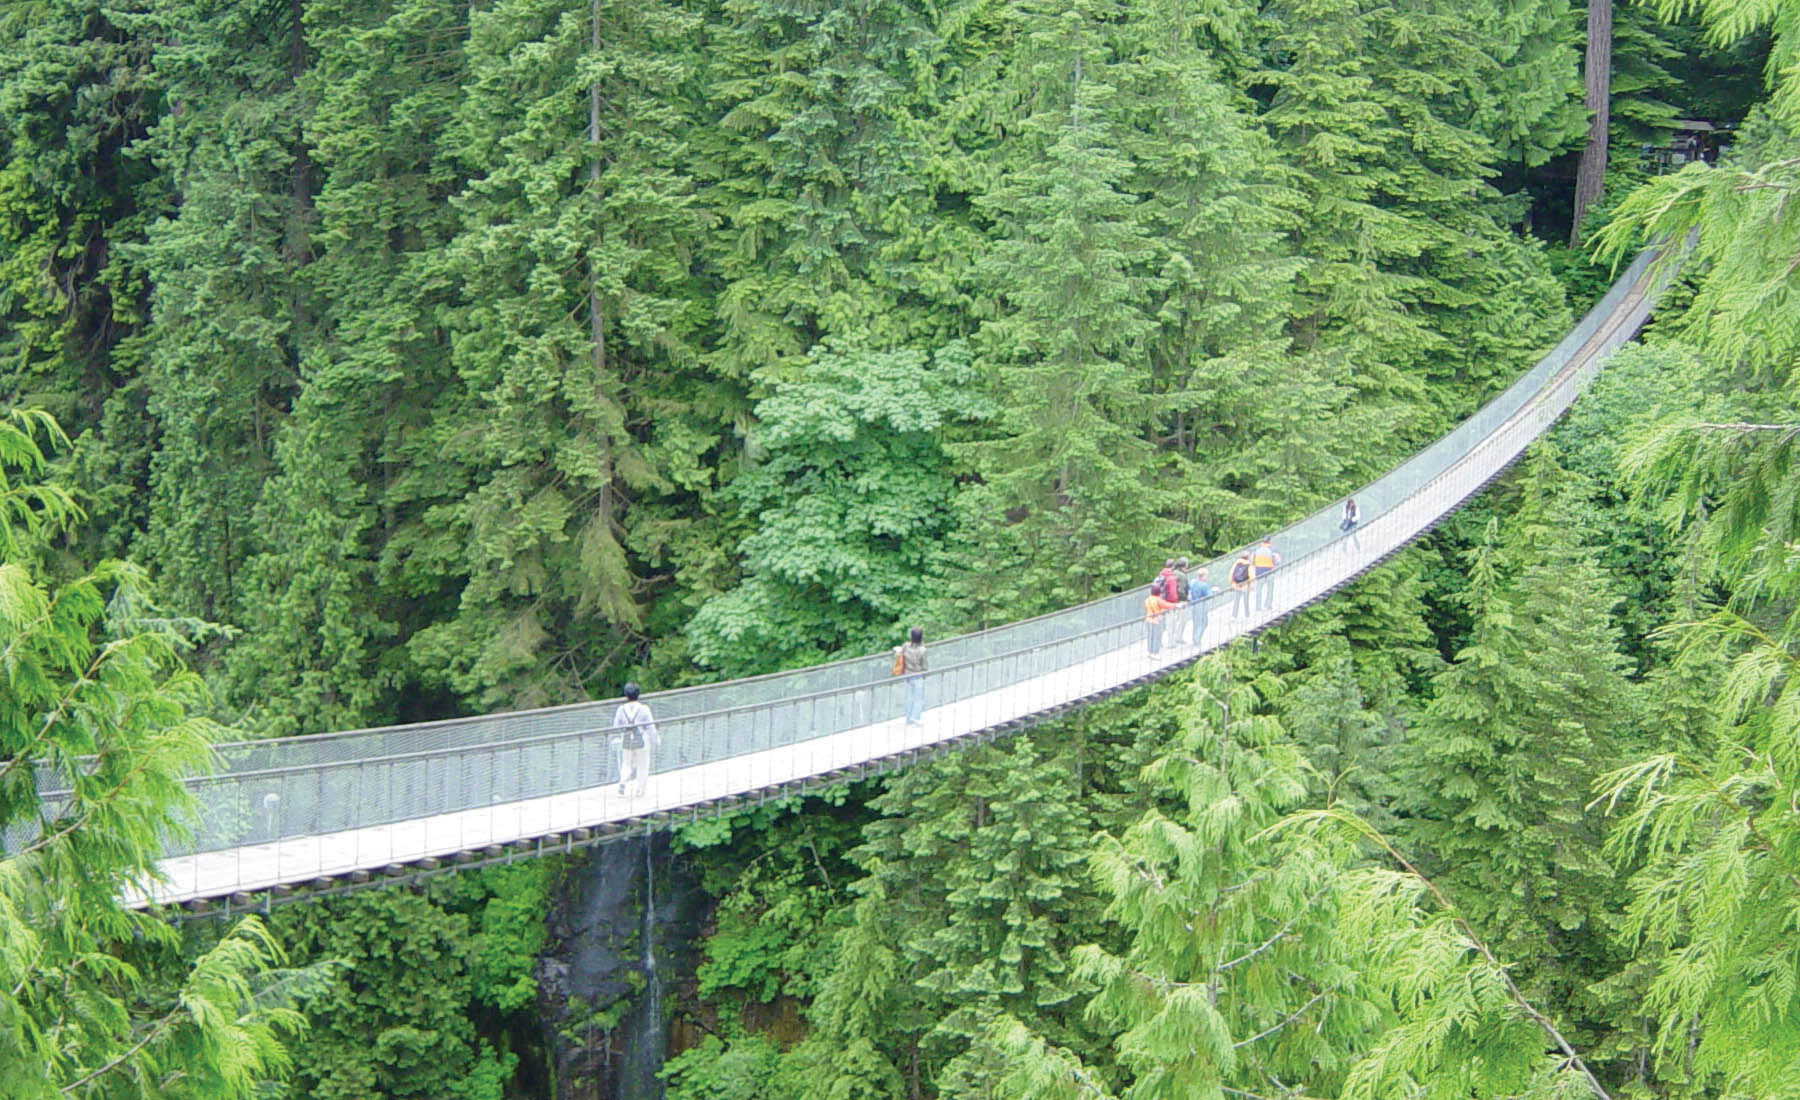 People standing on a very long, narrow, and high bridge